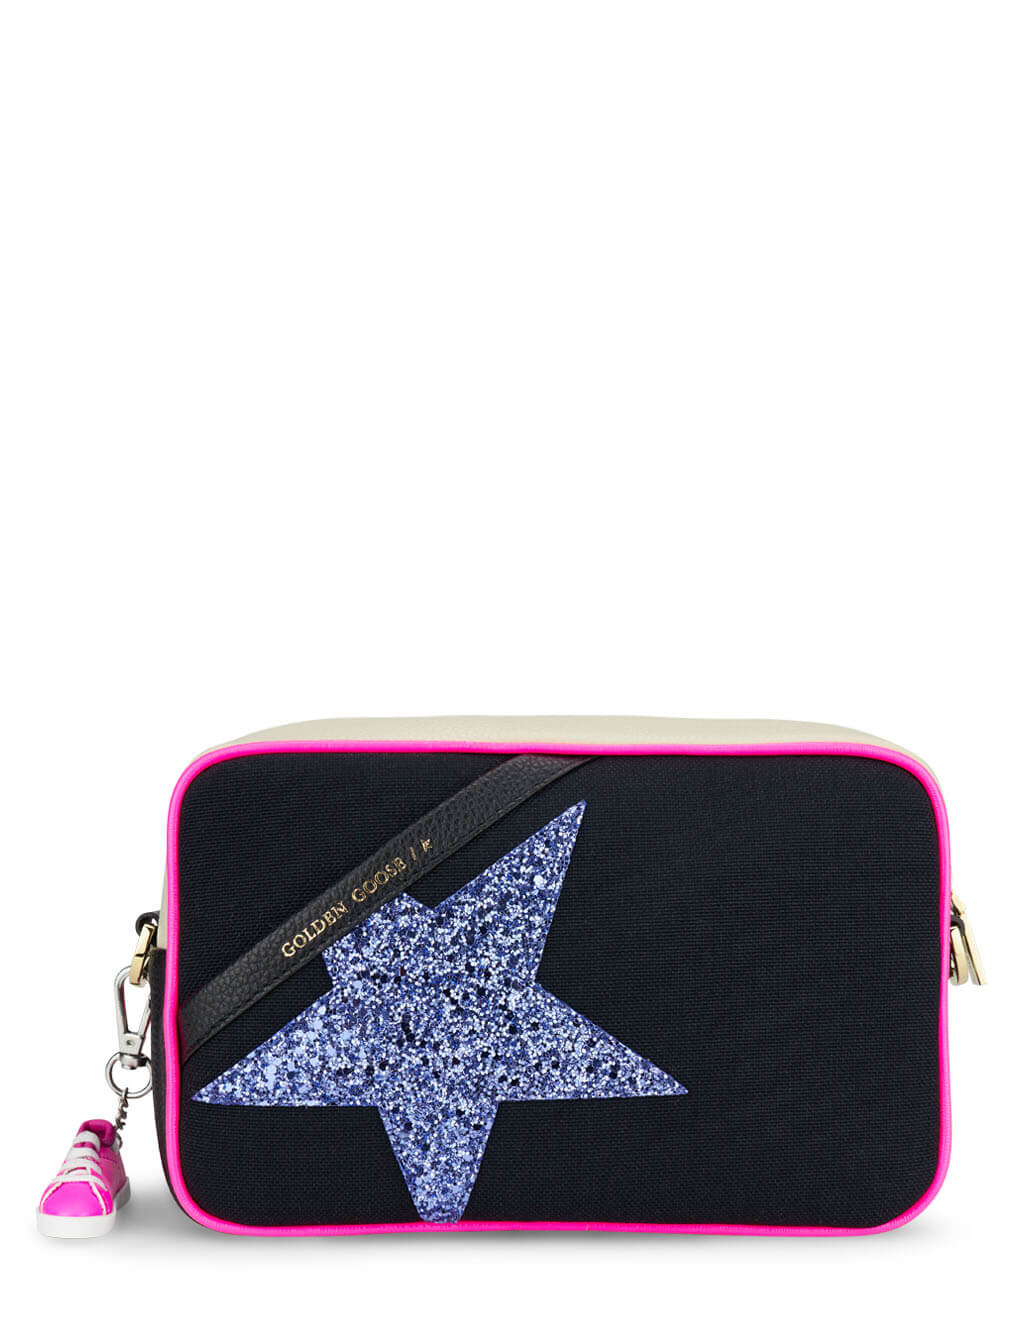 Women's Golden Goose Star Bag in Black/Purple/Fuchsia/White - GWA00101.A000187.90241